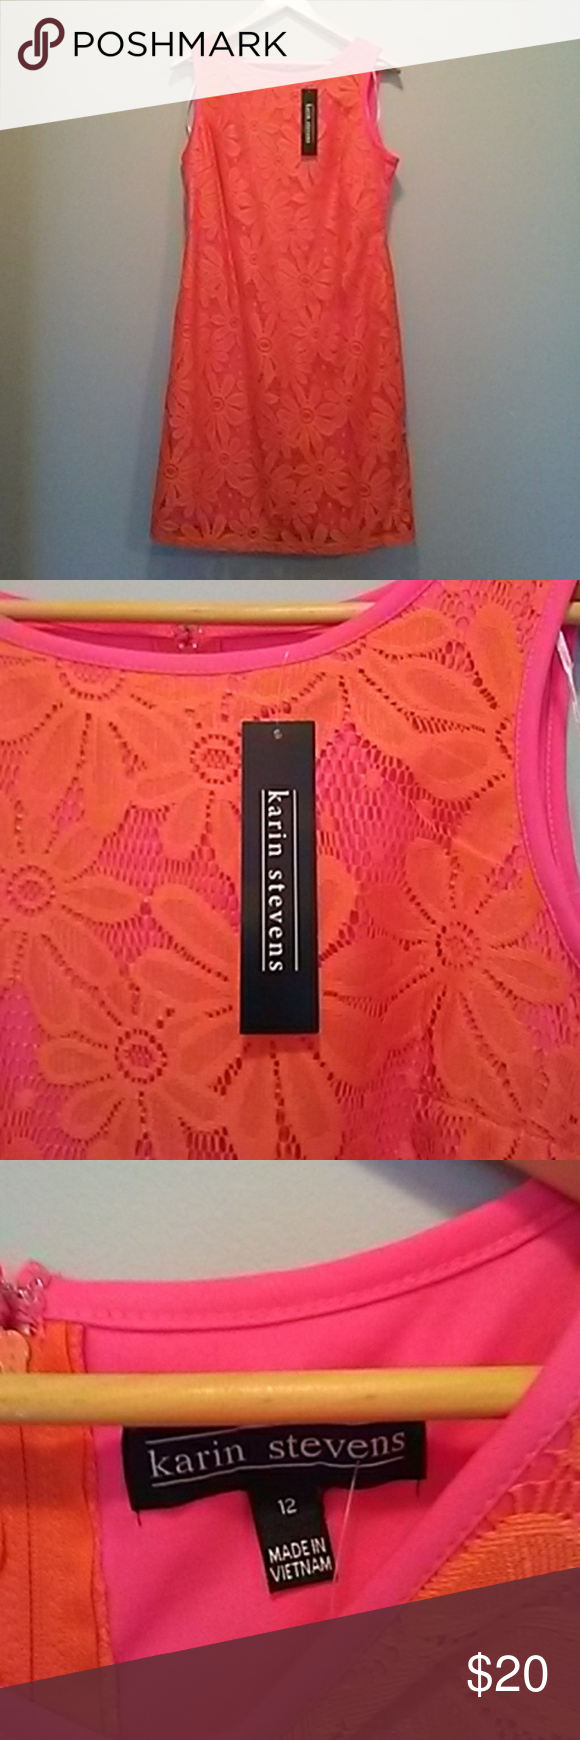 Hot pink and orange dress   Sun dress  Lace overlay Overlay and Hot pink